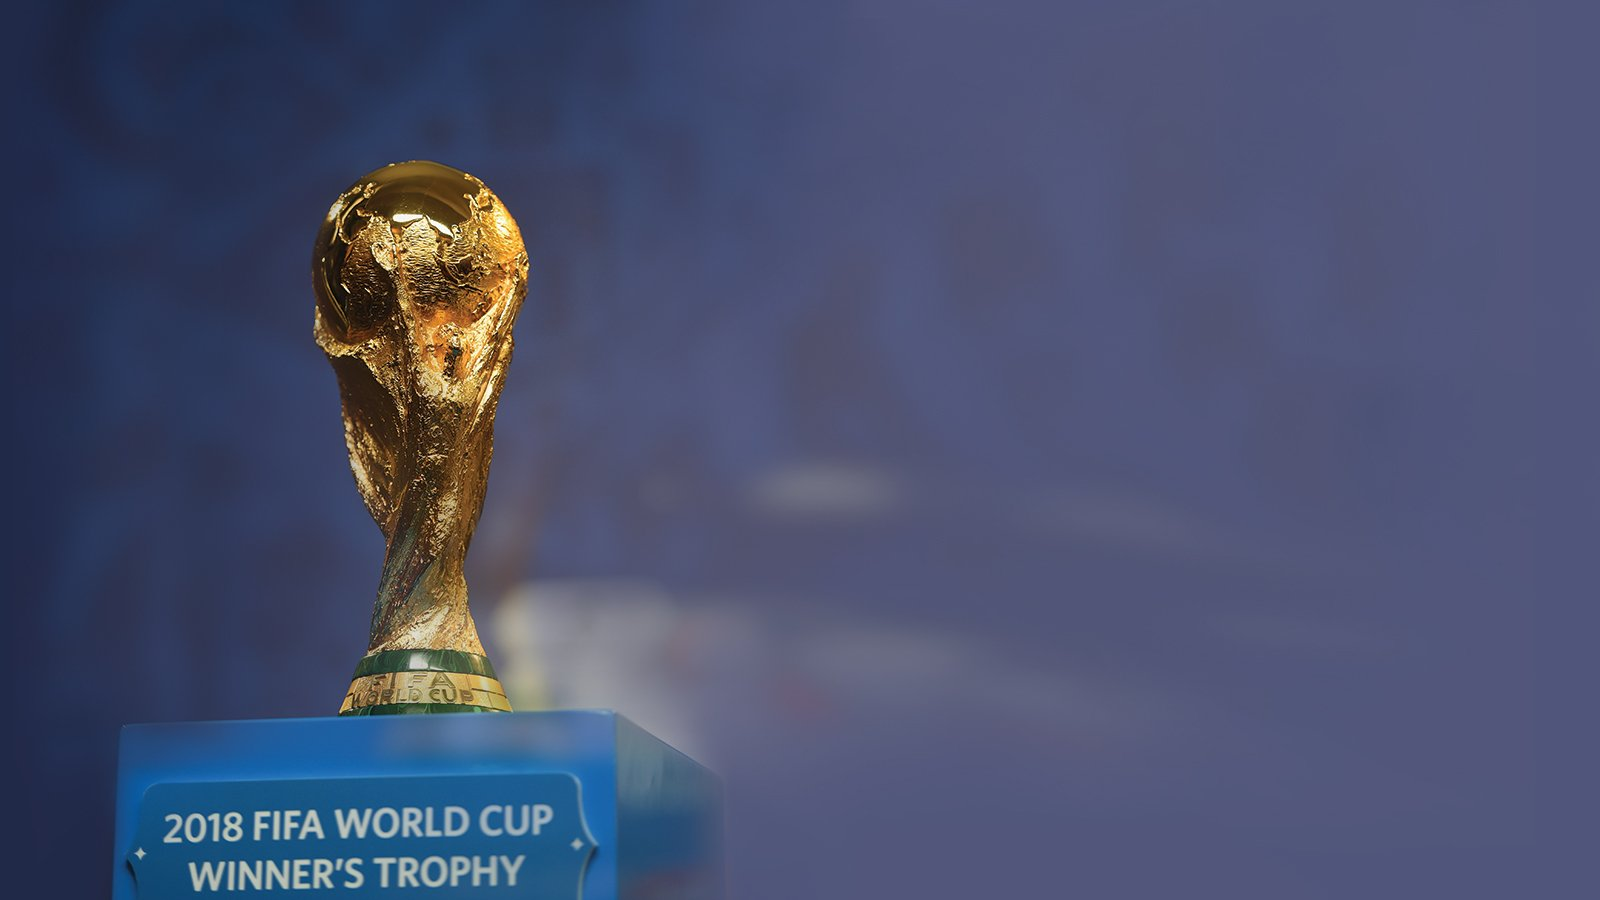 fifa world cup Fifa world cup history 2 posted by mac bryla - 2018/06/12 - football , visualisation with the fifa world cup in brazil now over, i thought i take a visual look at the 88 year old history of the fifa world cup.